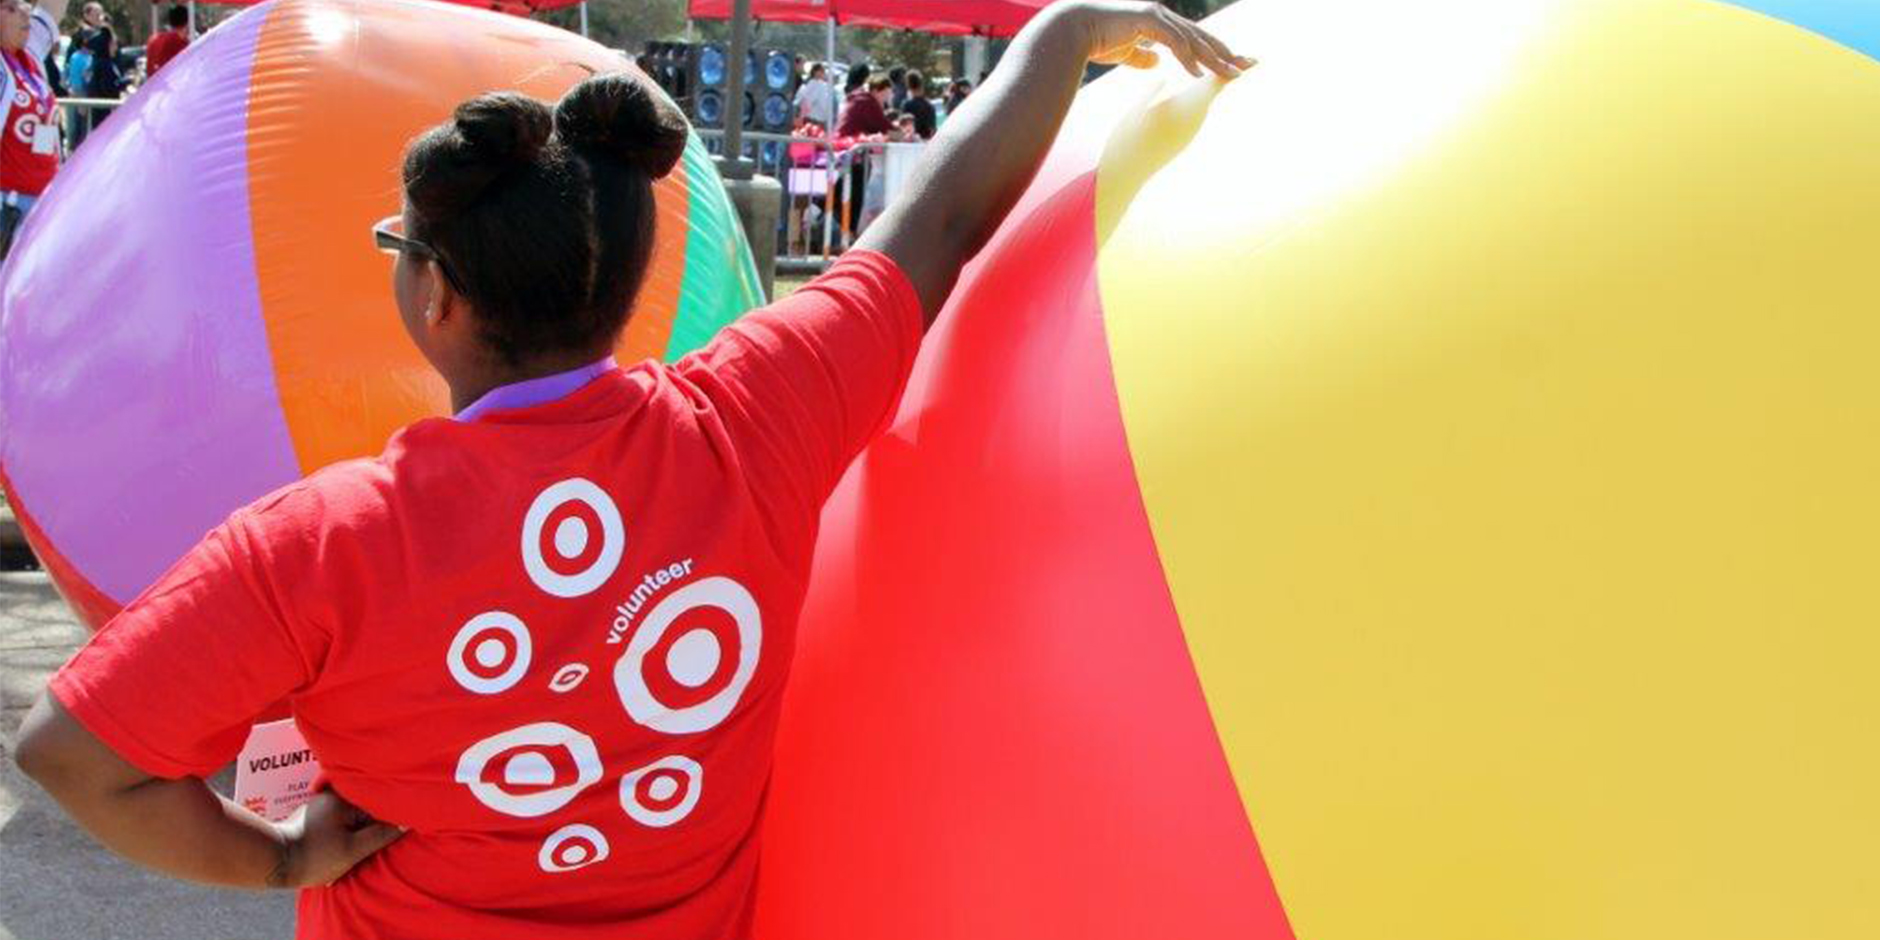 A team member in a red volunteer shirt leads an event with a giant beach ball